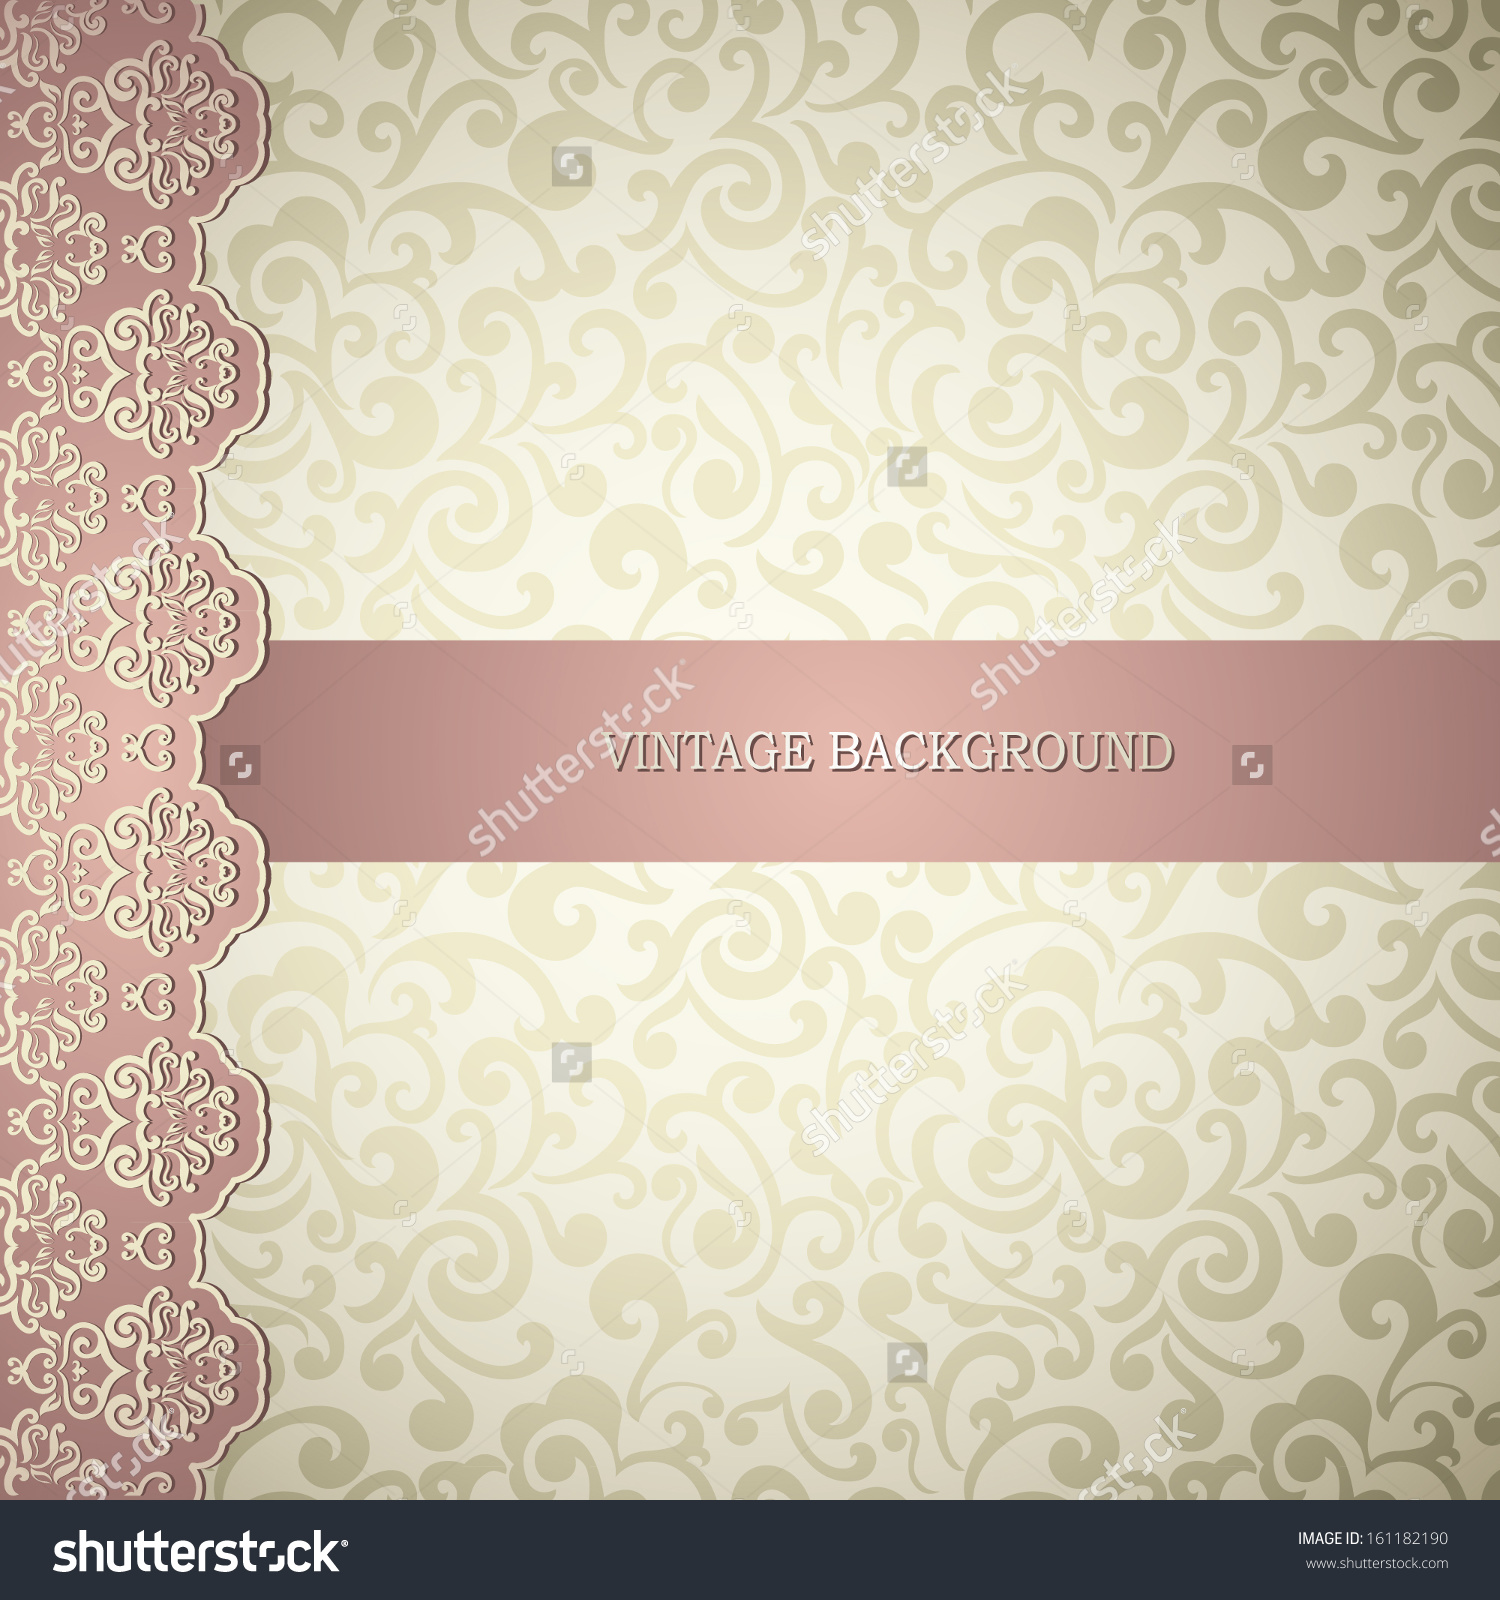 Download wallpaper for invitation card gallery wallpaper for invitation card stopboris Image collections